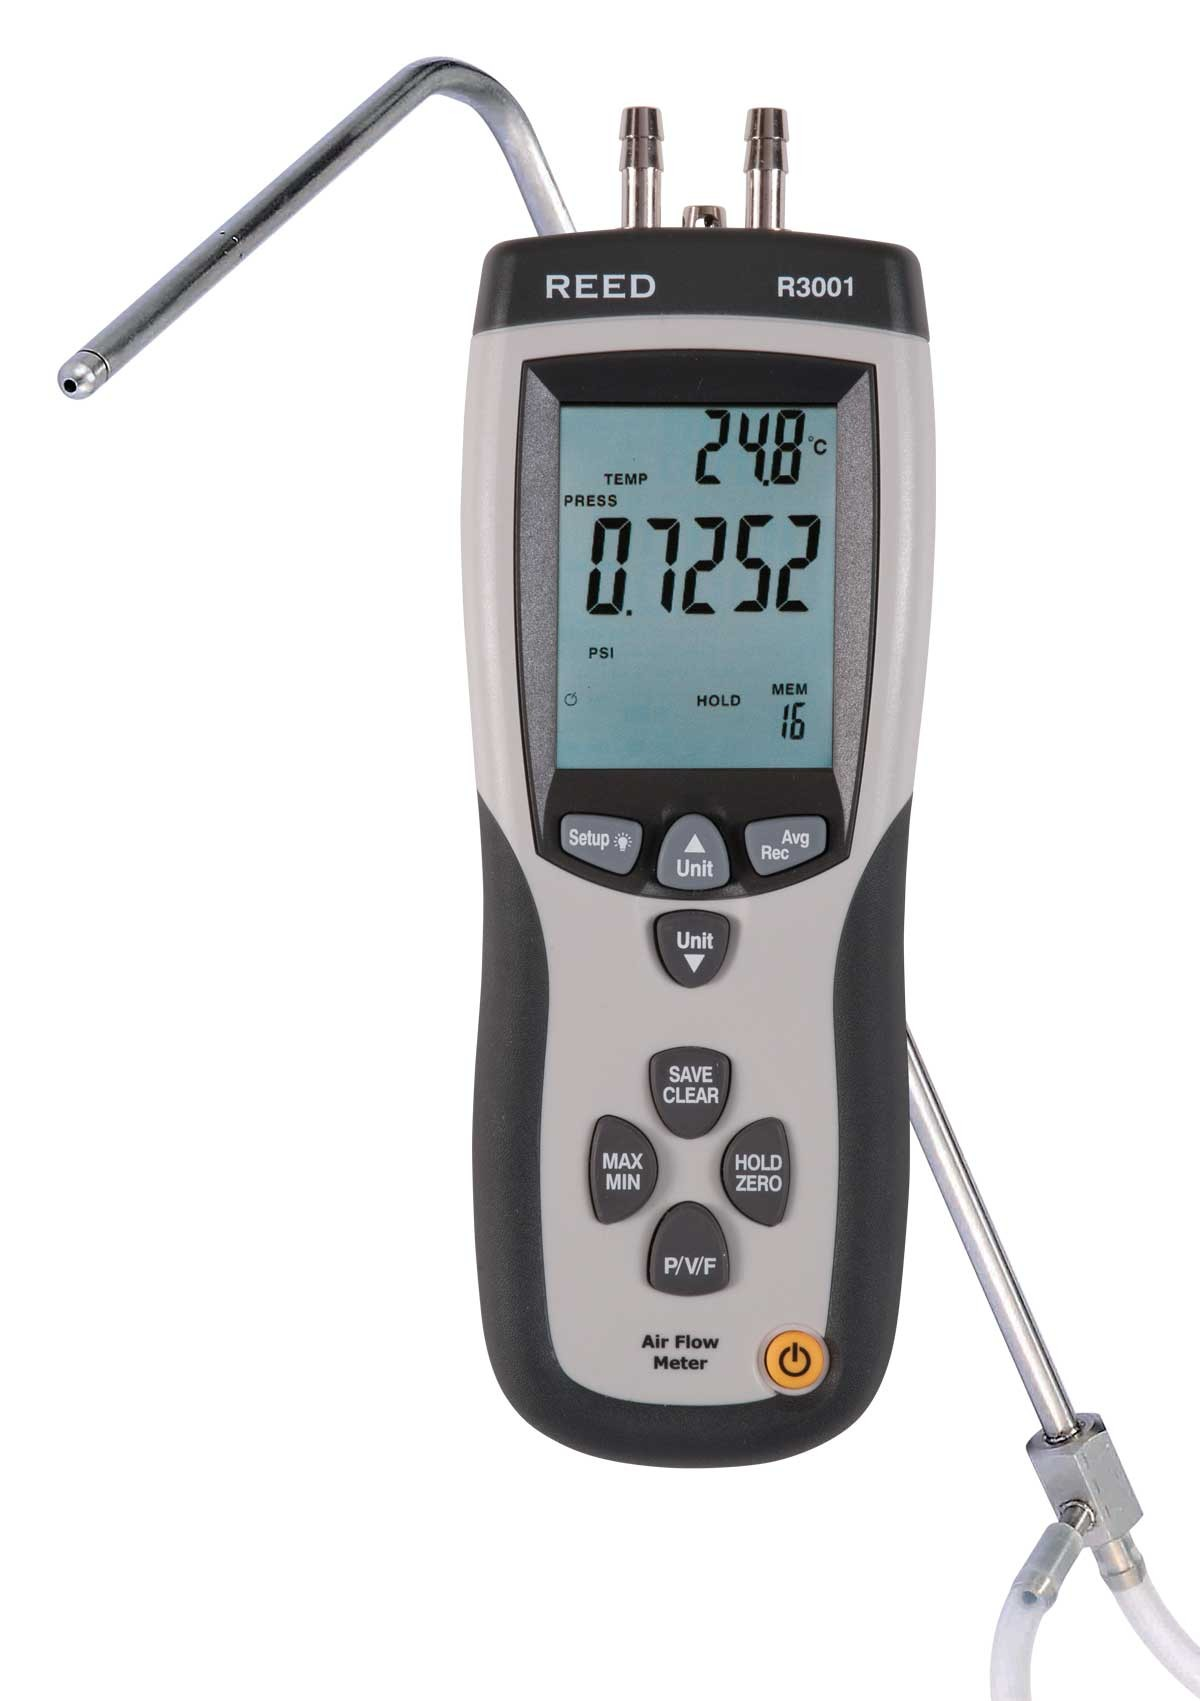 REED R3001 Pitot Tube Anemometer and Differential Manometer, with Air Volume (CFM/CMM)-REED R3001 4